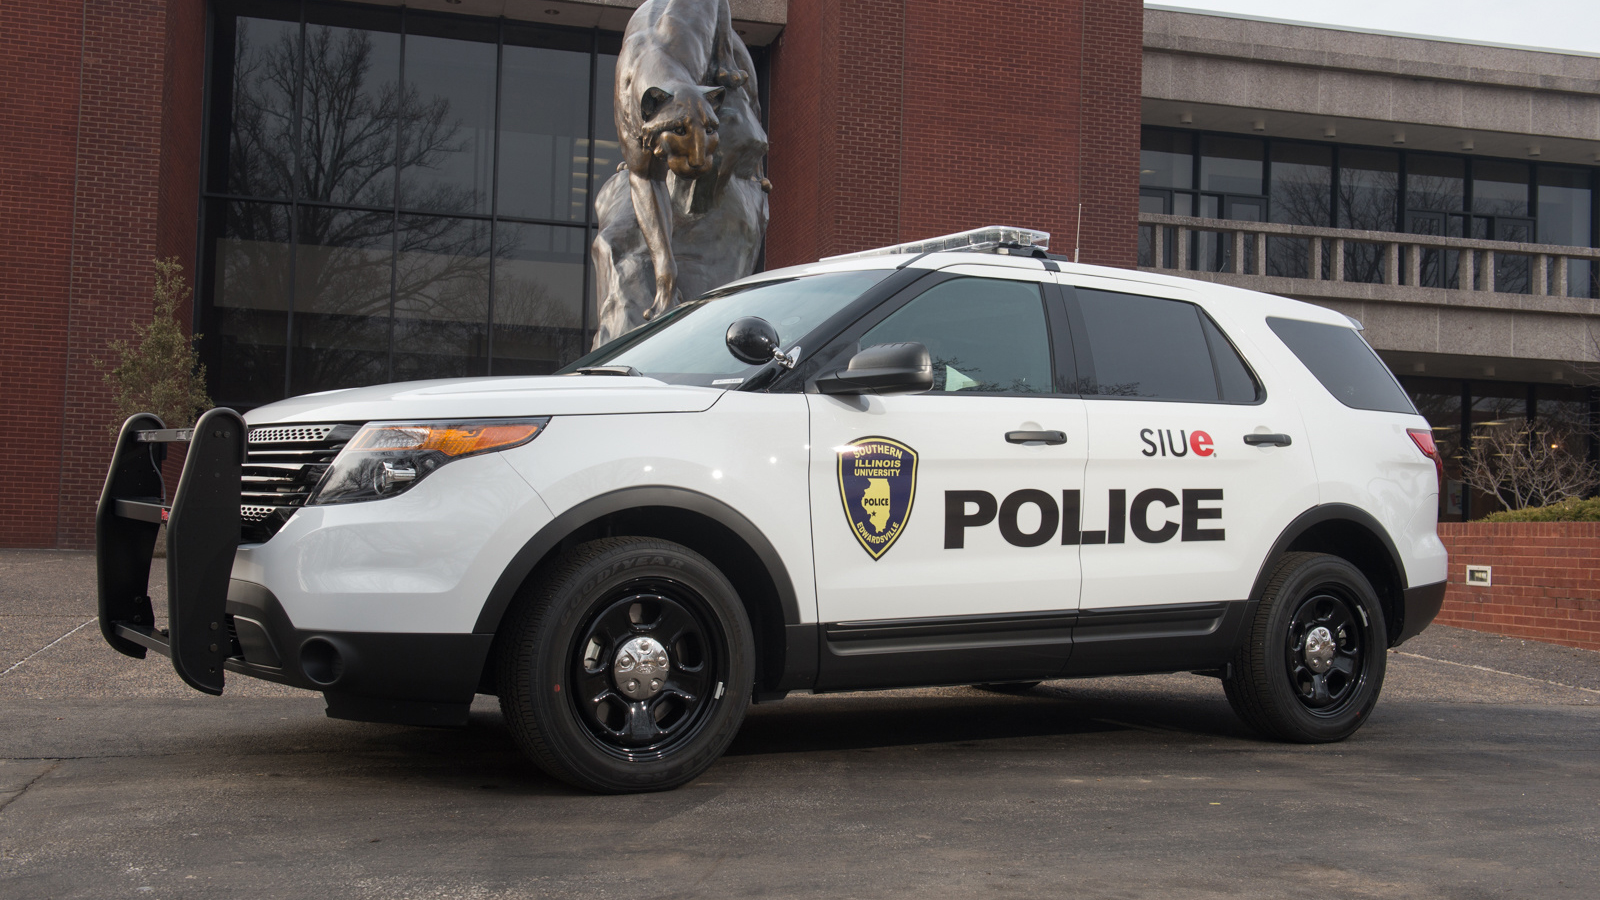 SIUE Police car